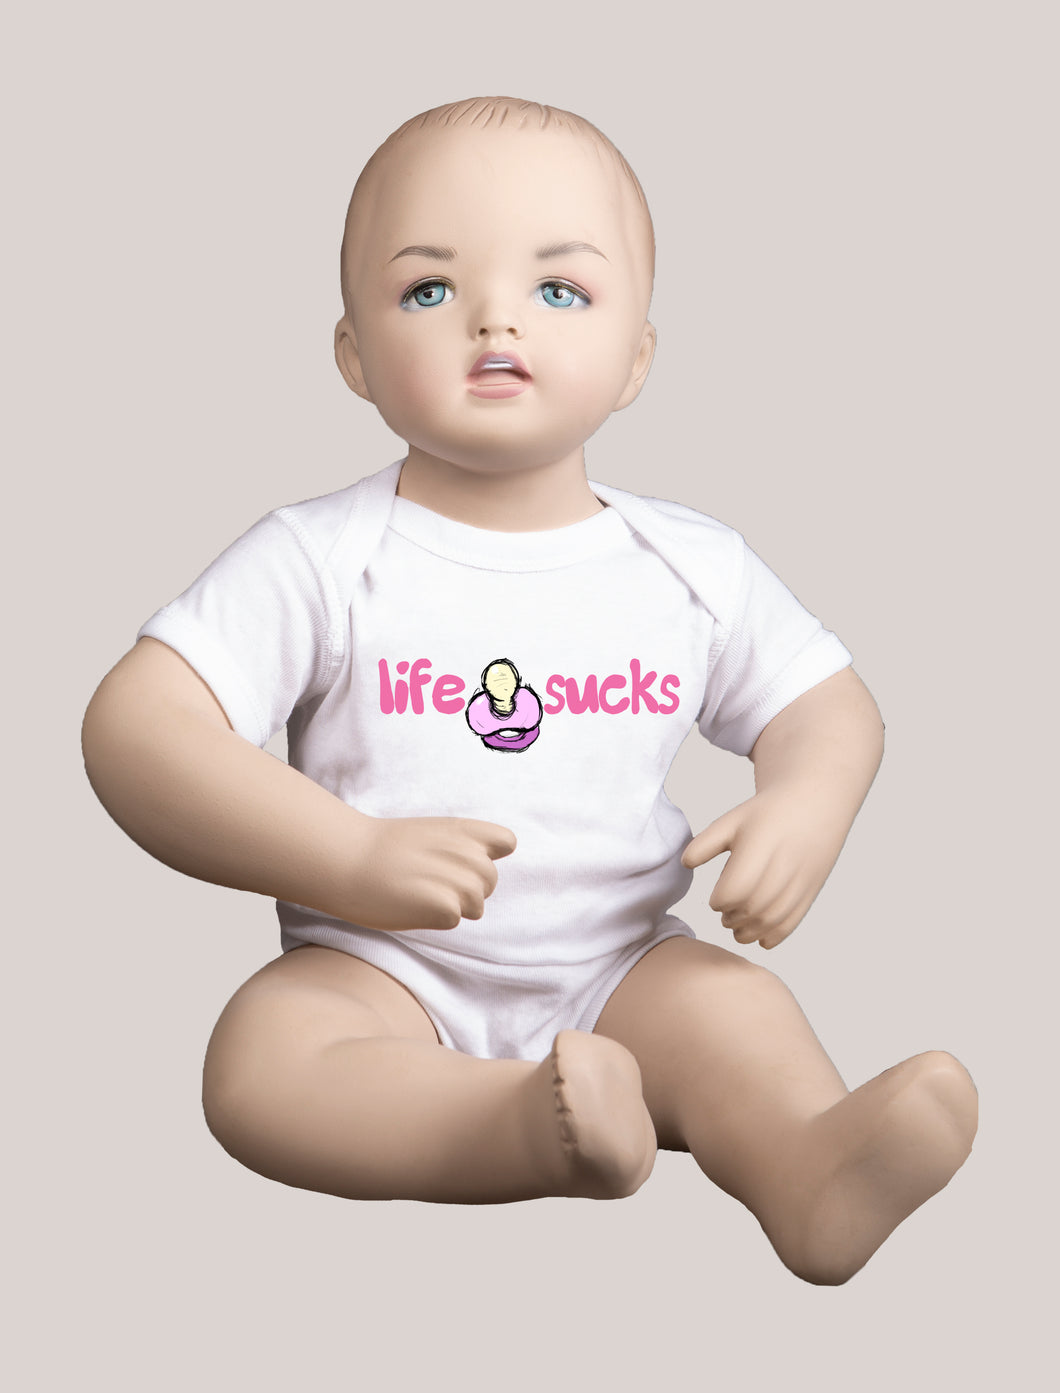 LIFE SUCKS Short-Sleeve Baby Bodysuit White/Pink